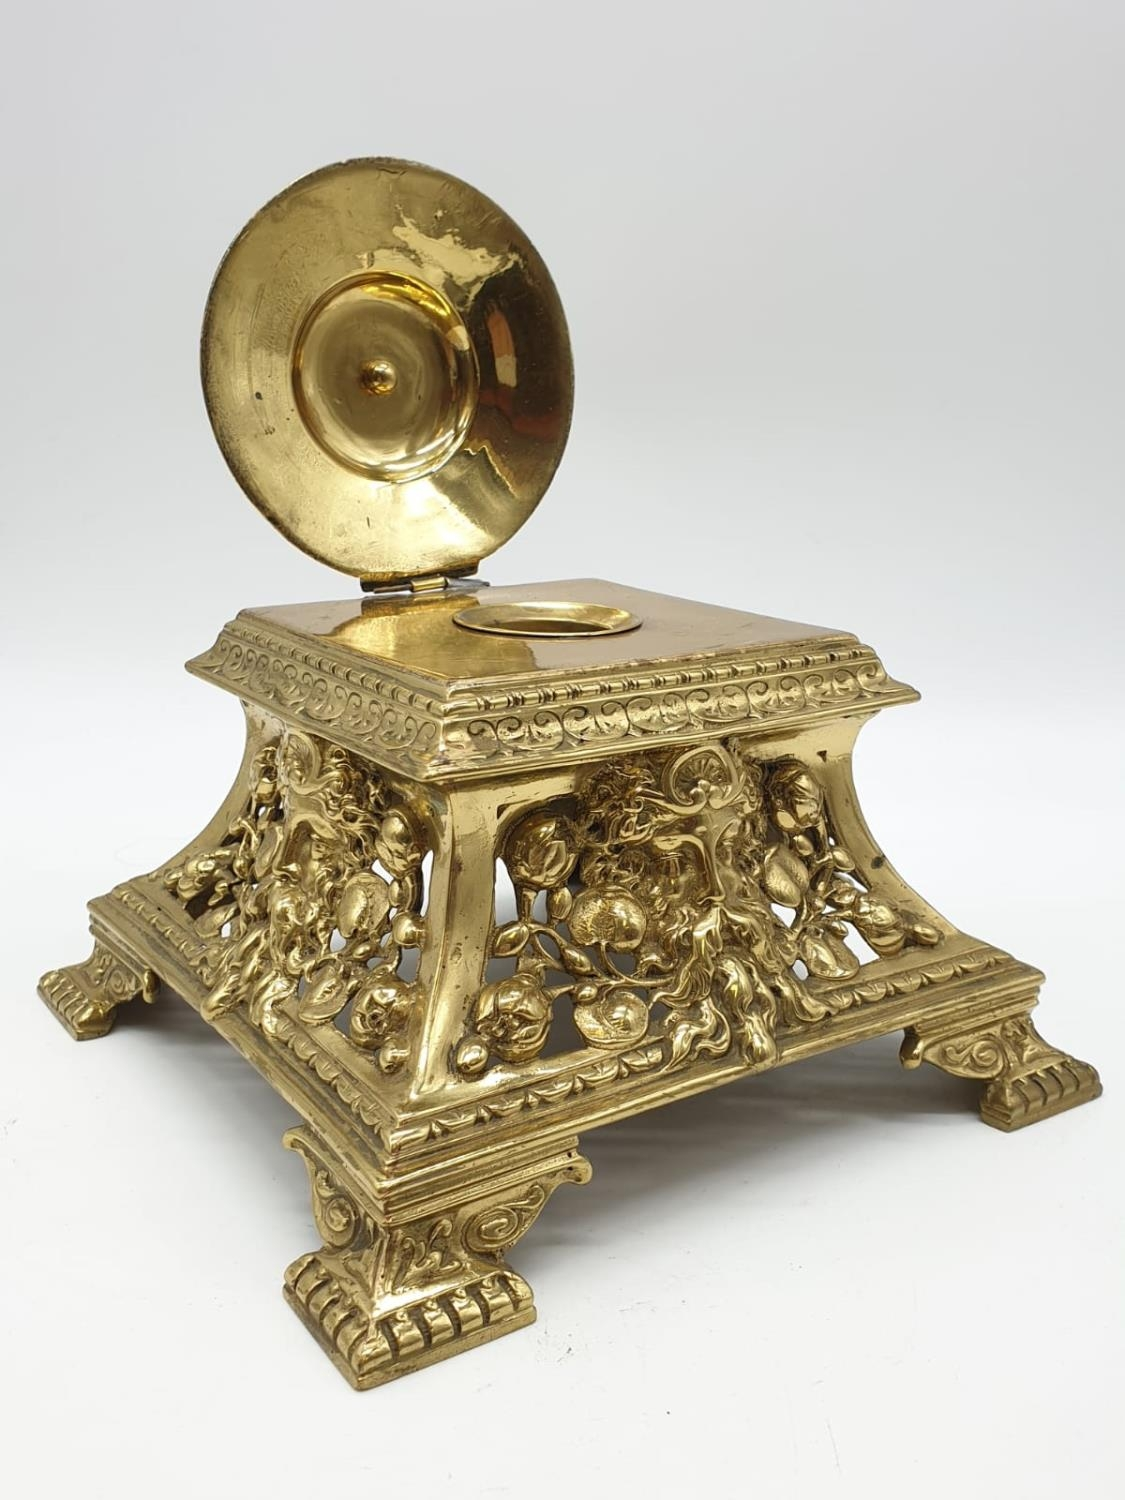 Ornate brass inkwell stand, 17cm tall, 19x19cm width - Image 6 of 9